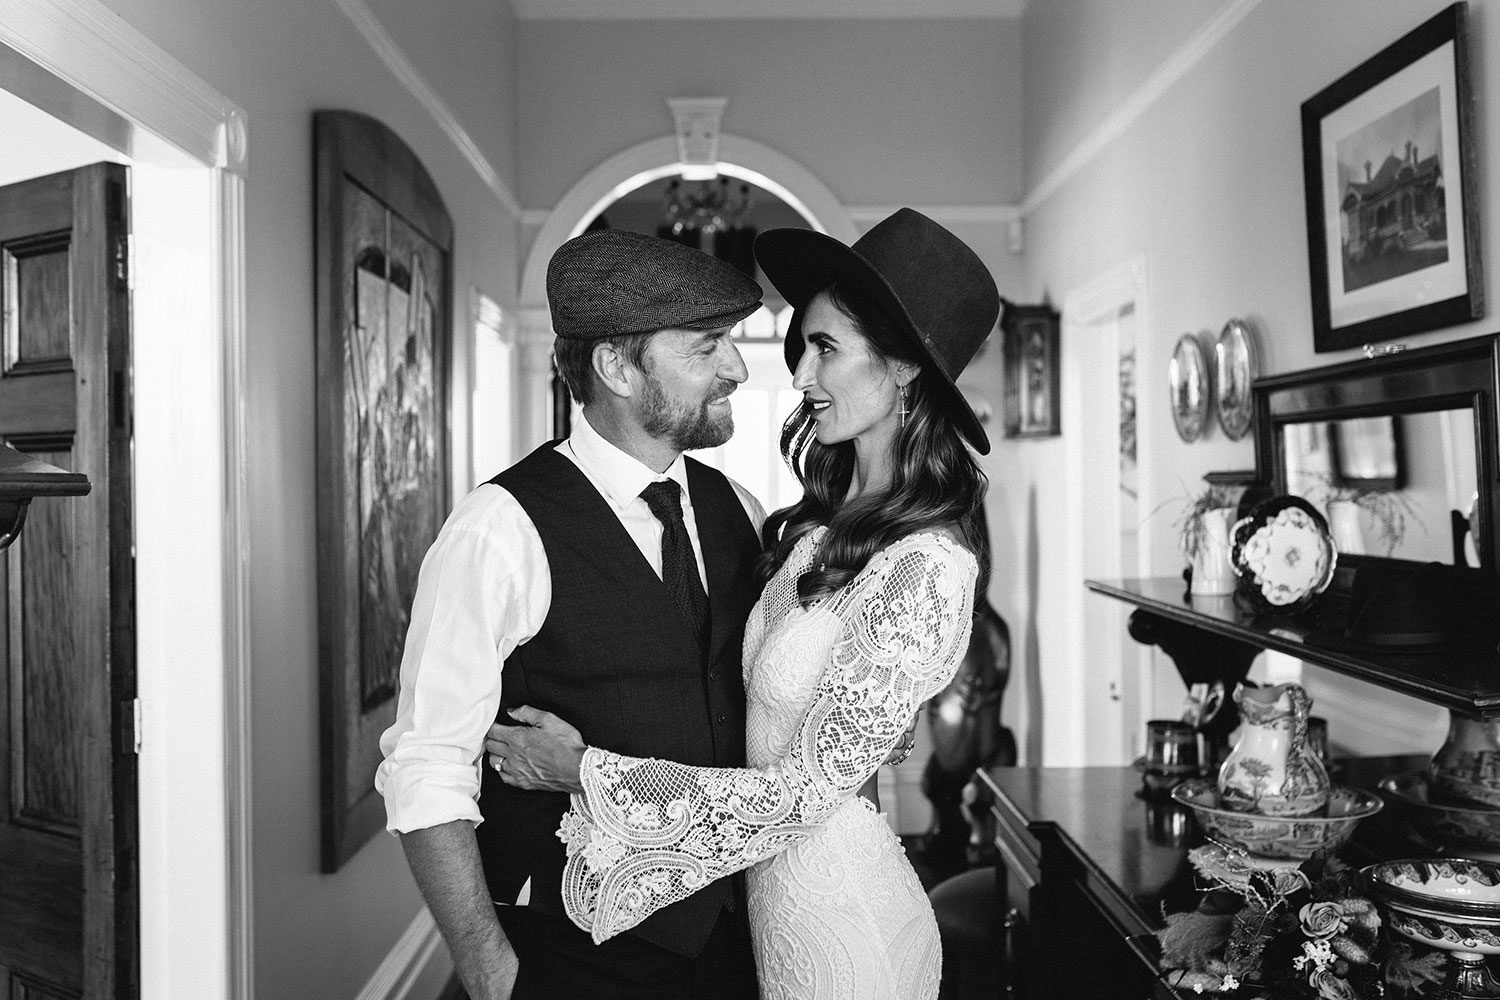 Bride wearing Sabine wedding gown by Auckland wedding dress maker Vinka Design, with French crochet lace detail and long sleeves - black and white profile